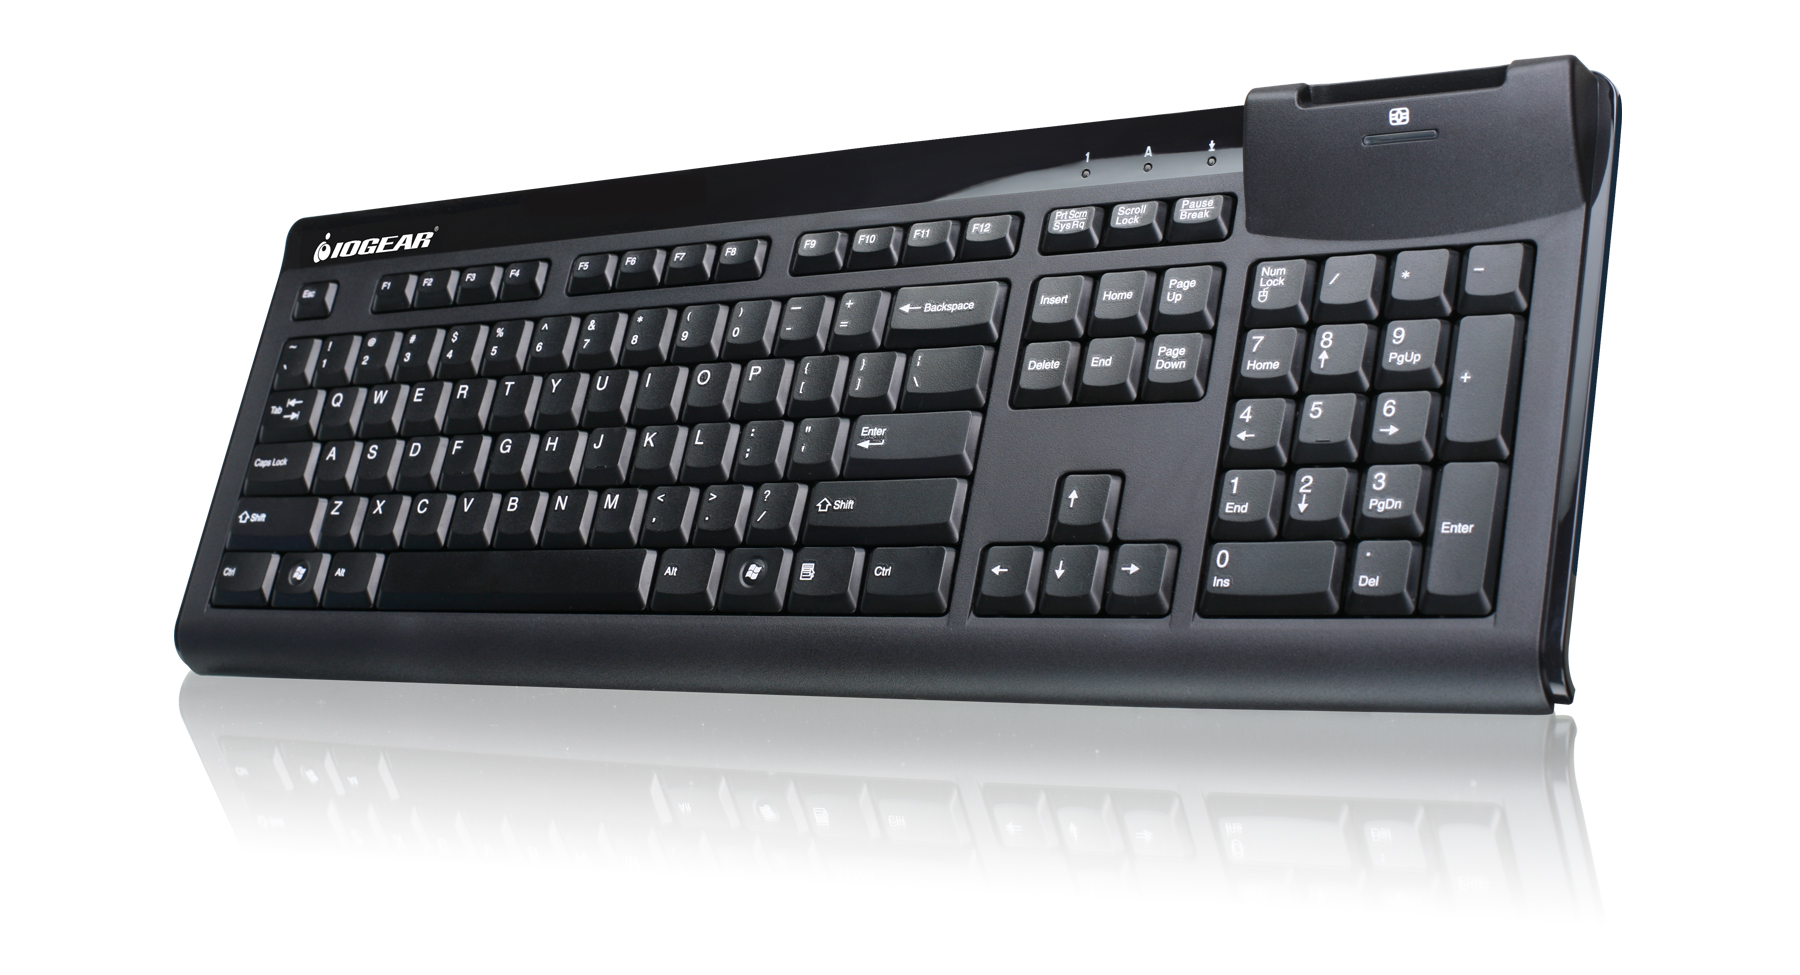 hp smart card terminal keyboard driver windows 7